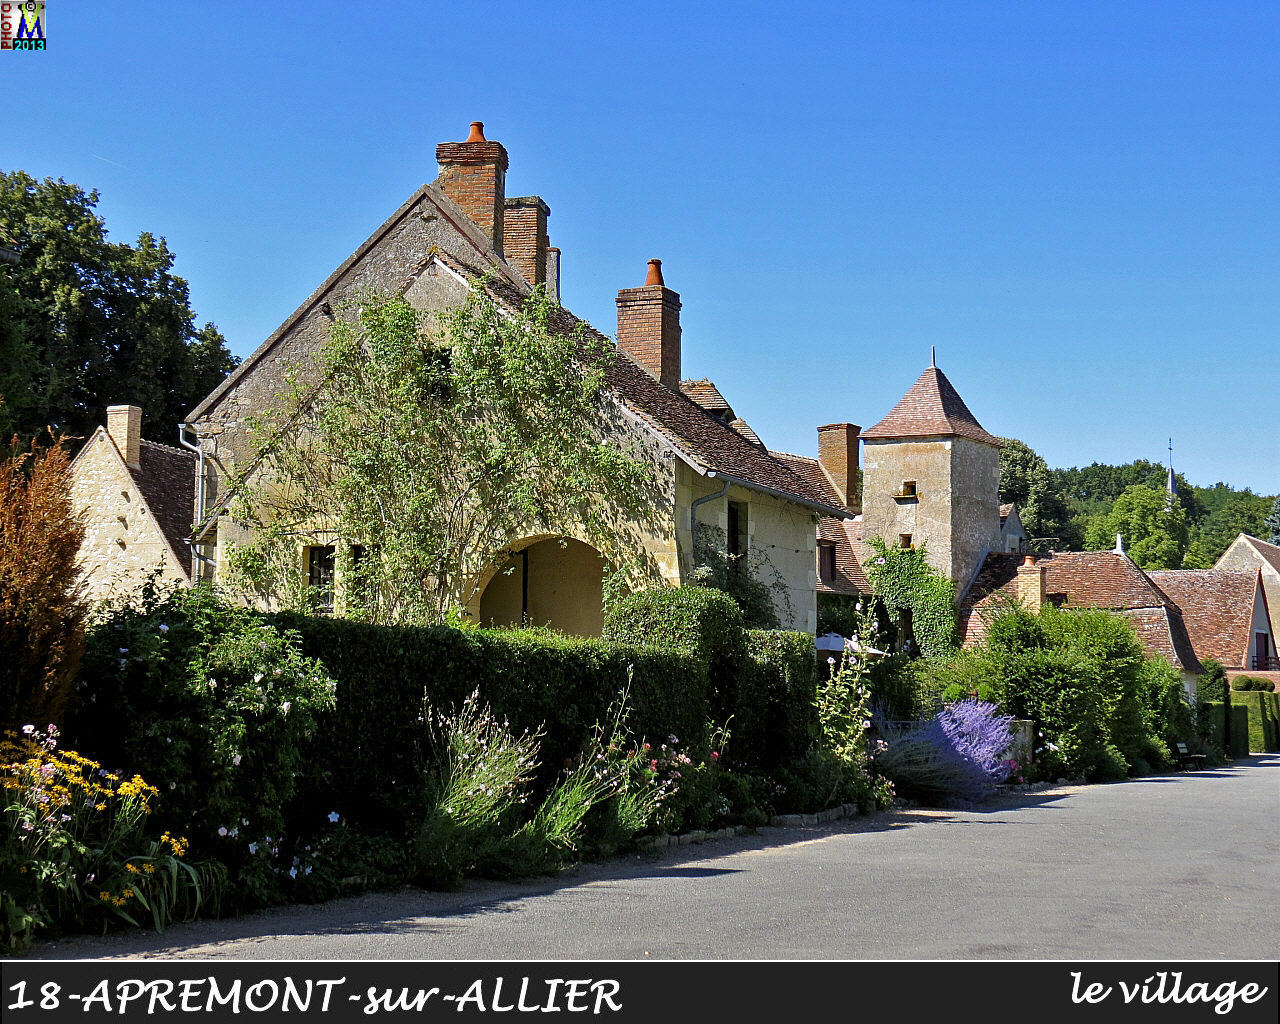 18APREMONT-ALLIER_village_104.jpg